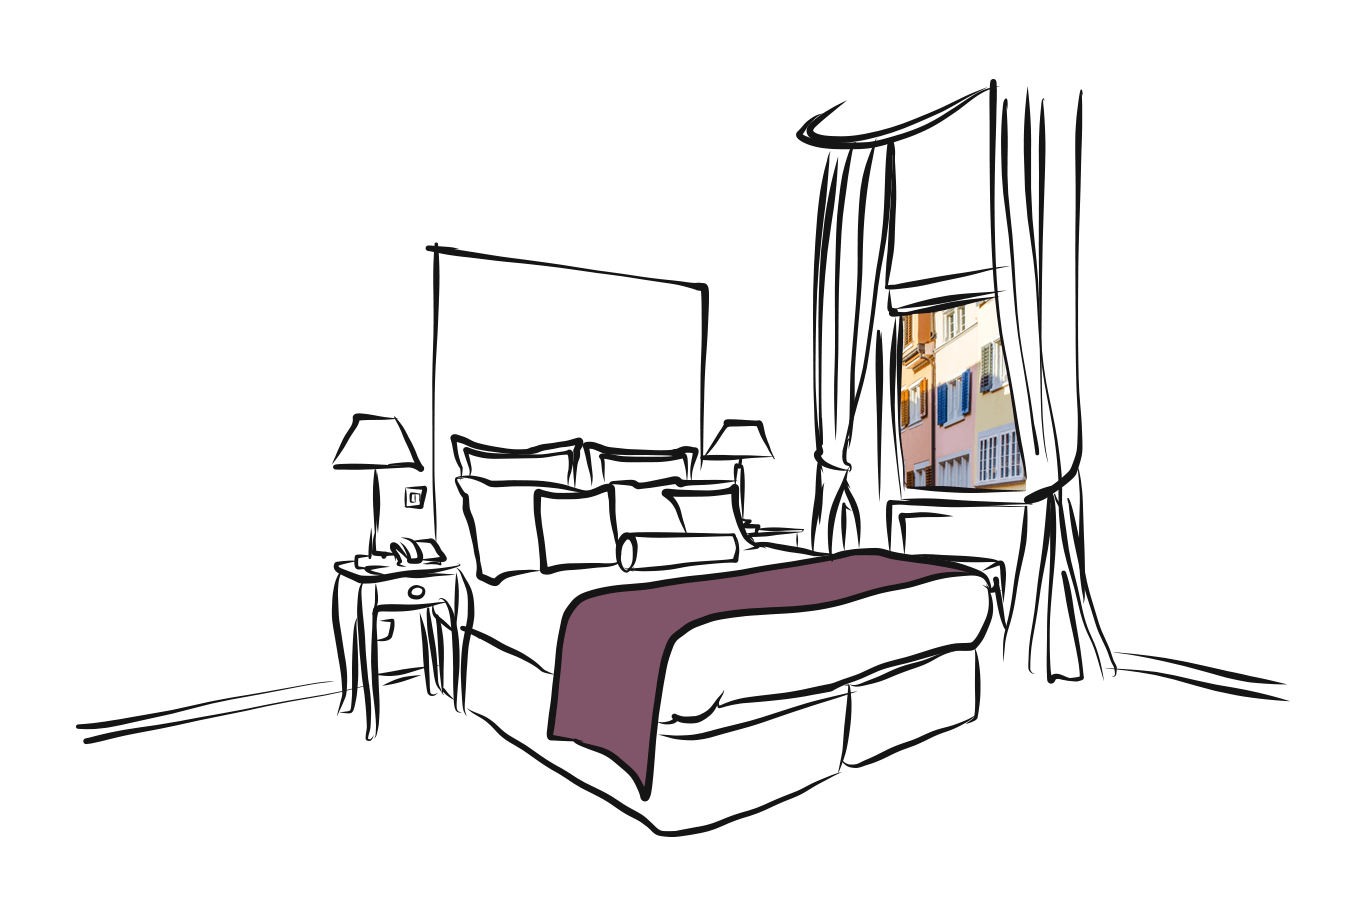 hotel and guesthouse insurance illustration of hotel room with view onto street